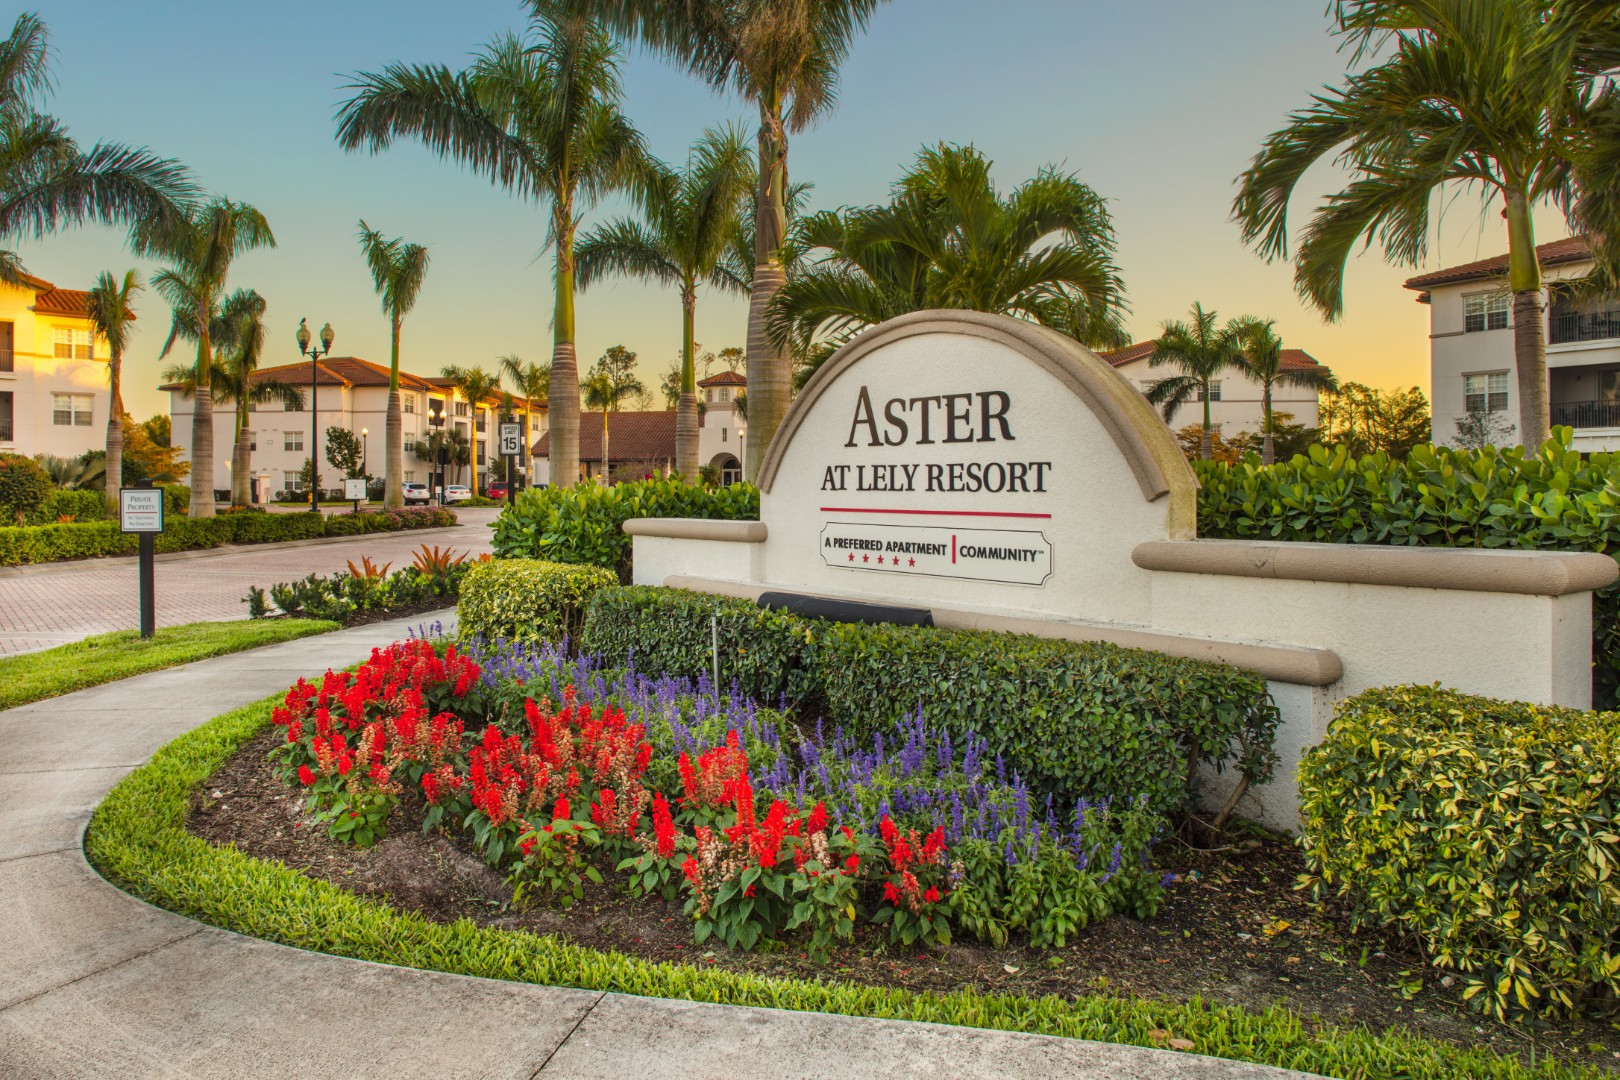 Aster at Lely Resort photo